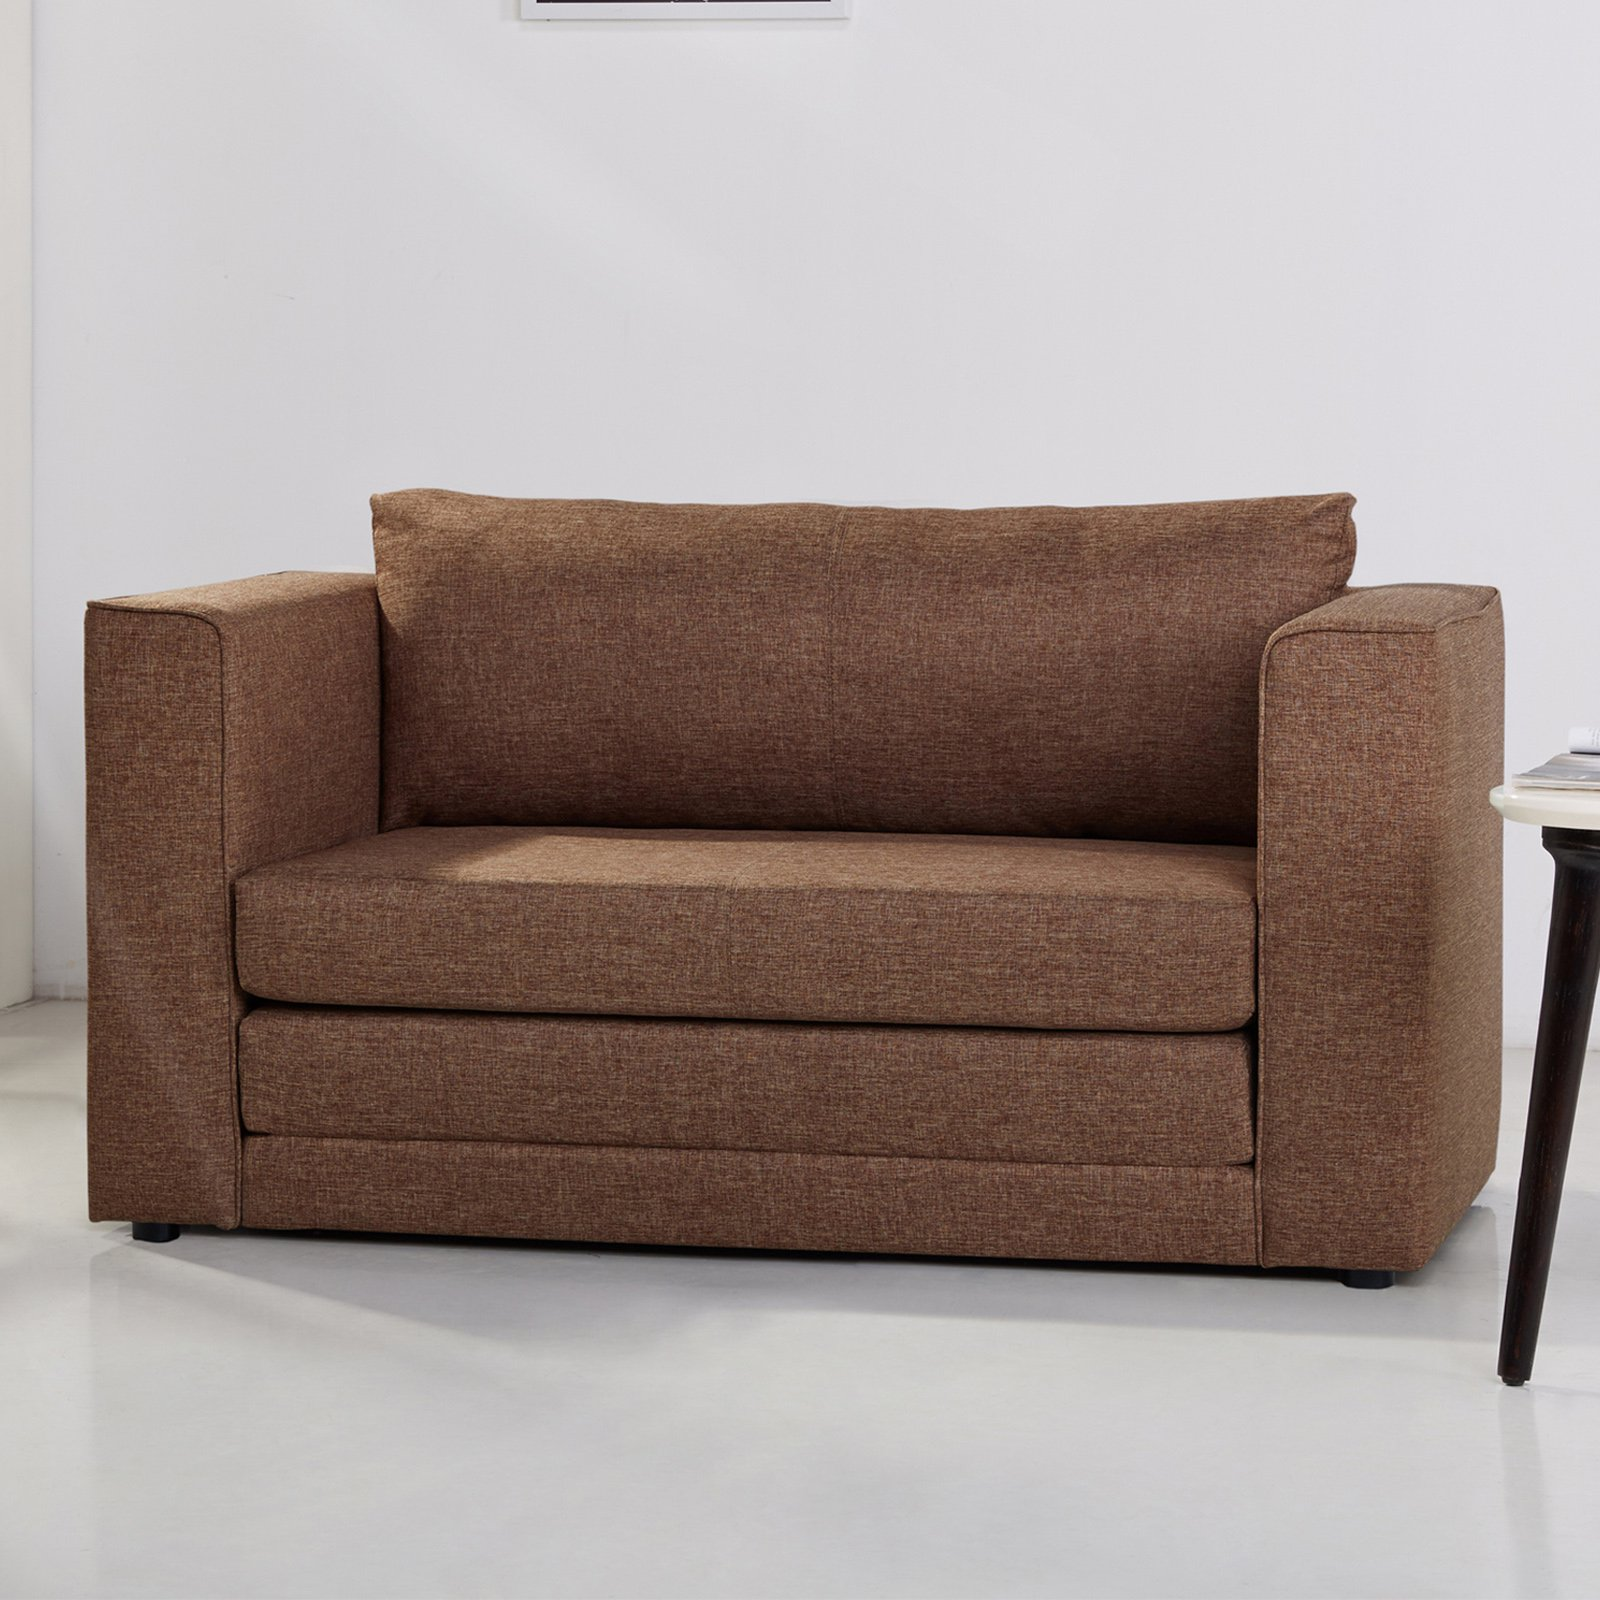 Gold Sparrow Corona Convertible Sleeper Loveseat